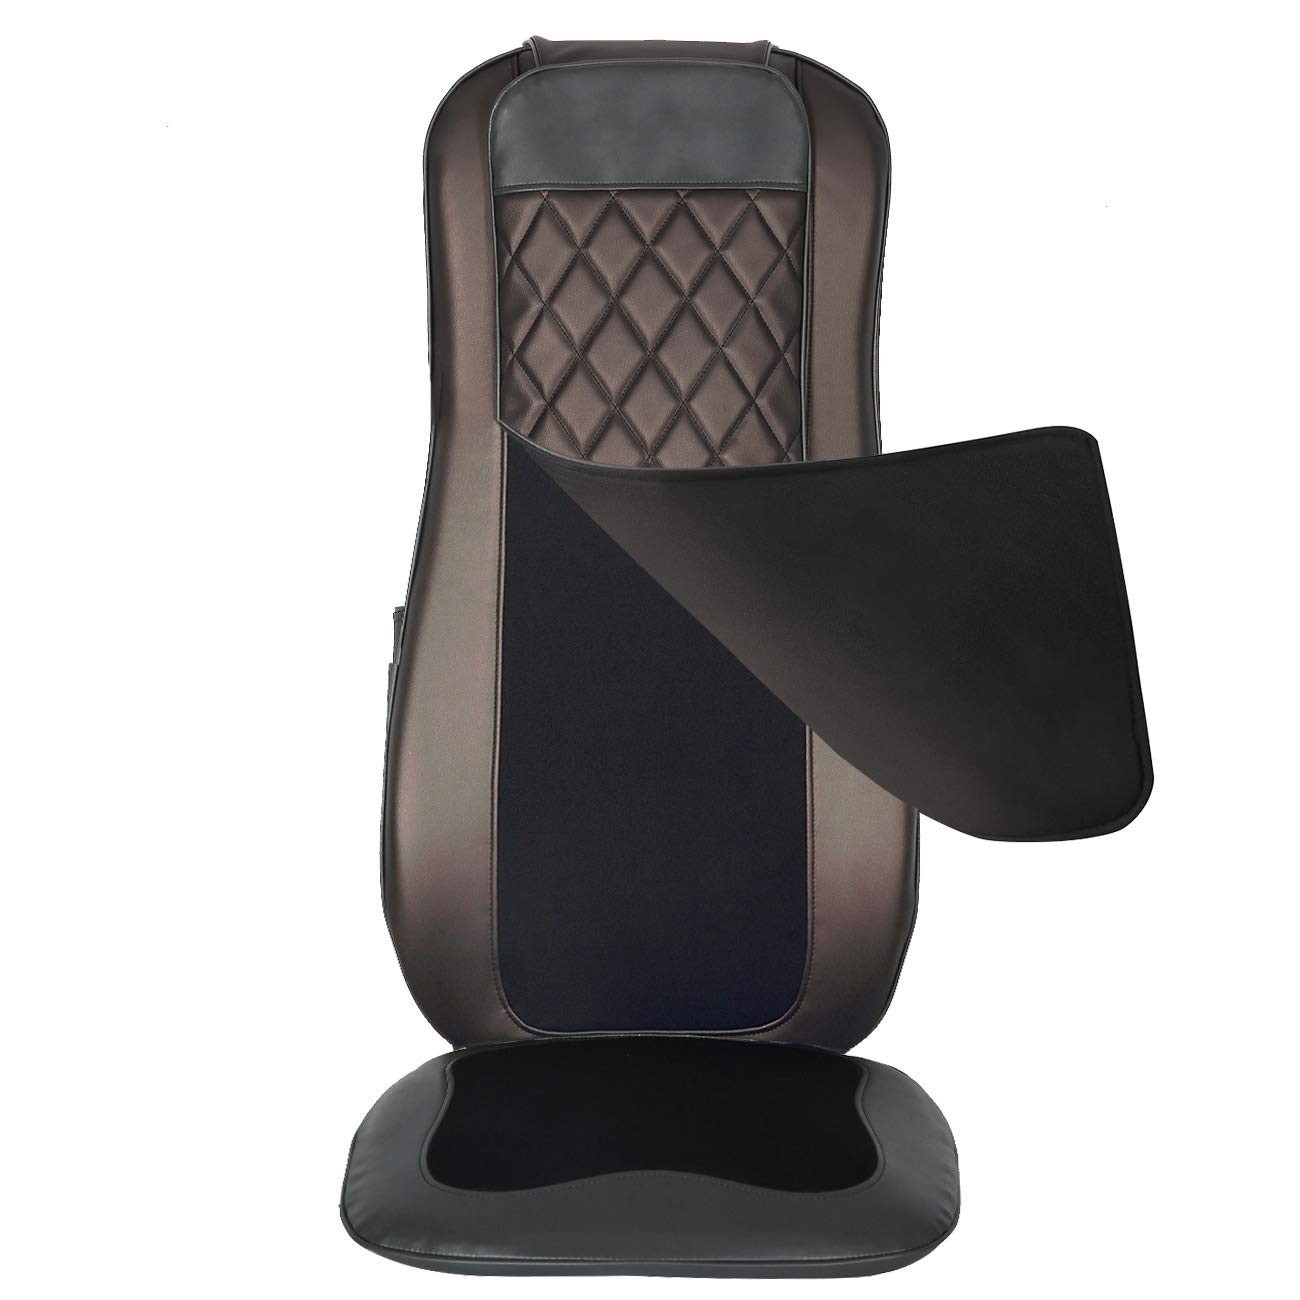 Picture of: Comfier Shiatsu Back Massager With Heat Deep Tissue Kneading Massage Seat Cushion Massage Chair Pad For Full Back Pain Relief Electric Body Massager For Home Or Office Chair Use